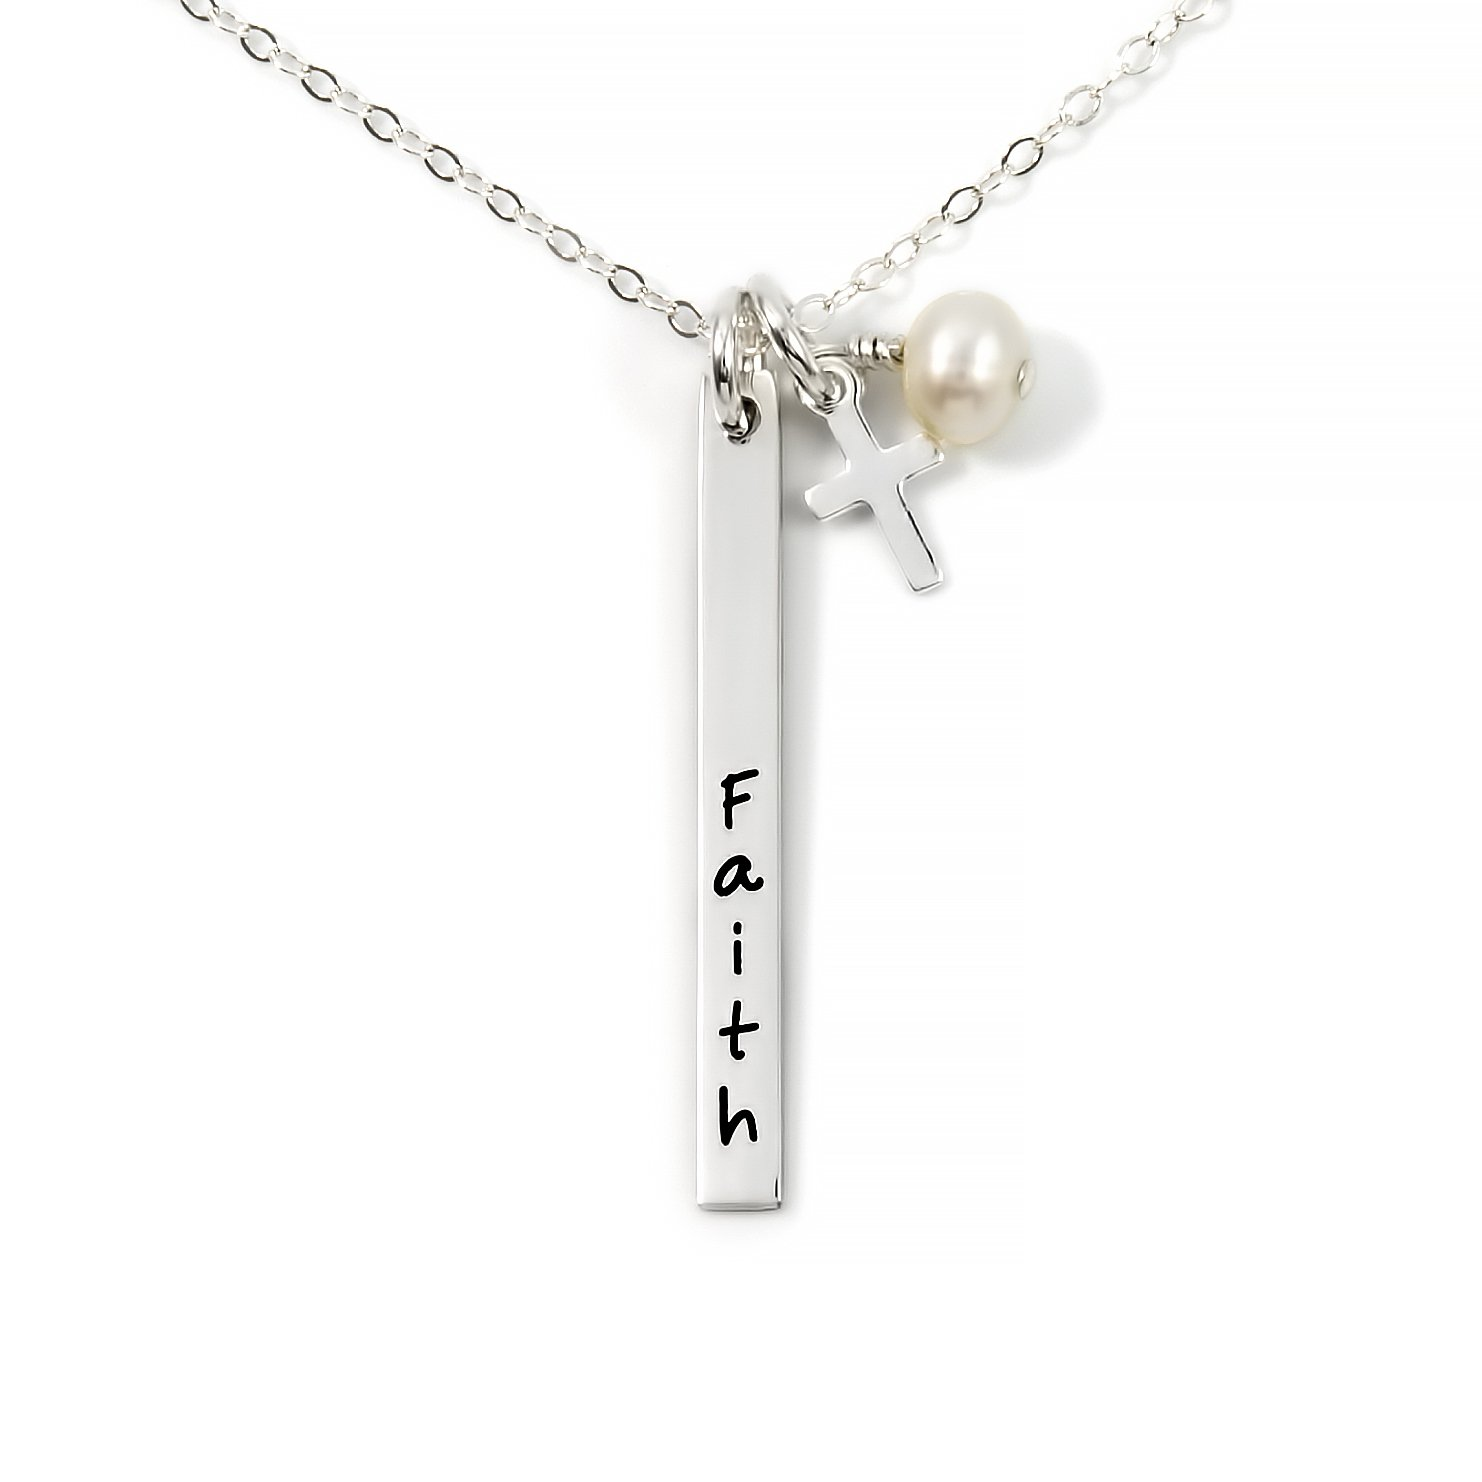 Skinny Name Bar with Mini Cross and Swarovski Pearl Personalized Name Necklace. Customize 2 Sterling Silver Rectangular Pendant Necklace. Includes a 925 Cross Charm and 925 Chain of your choice